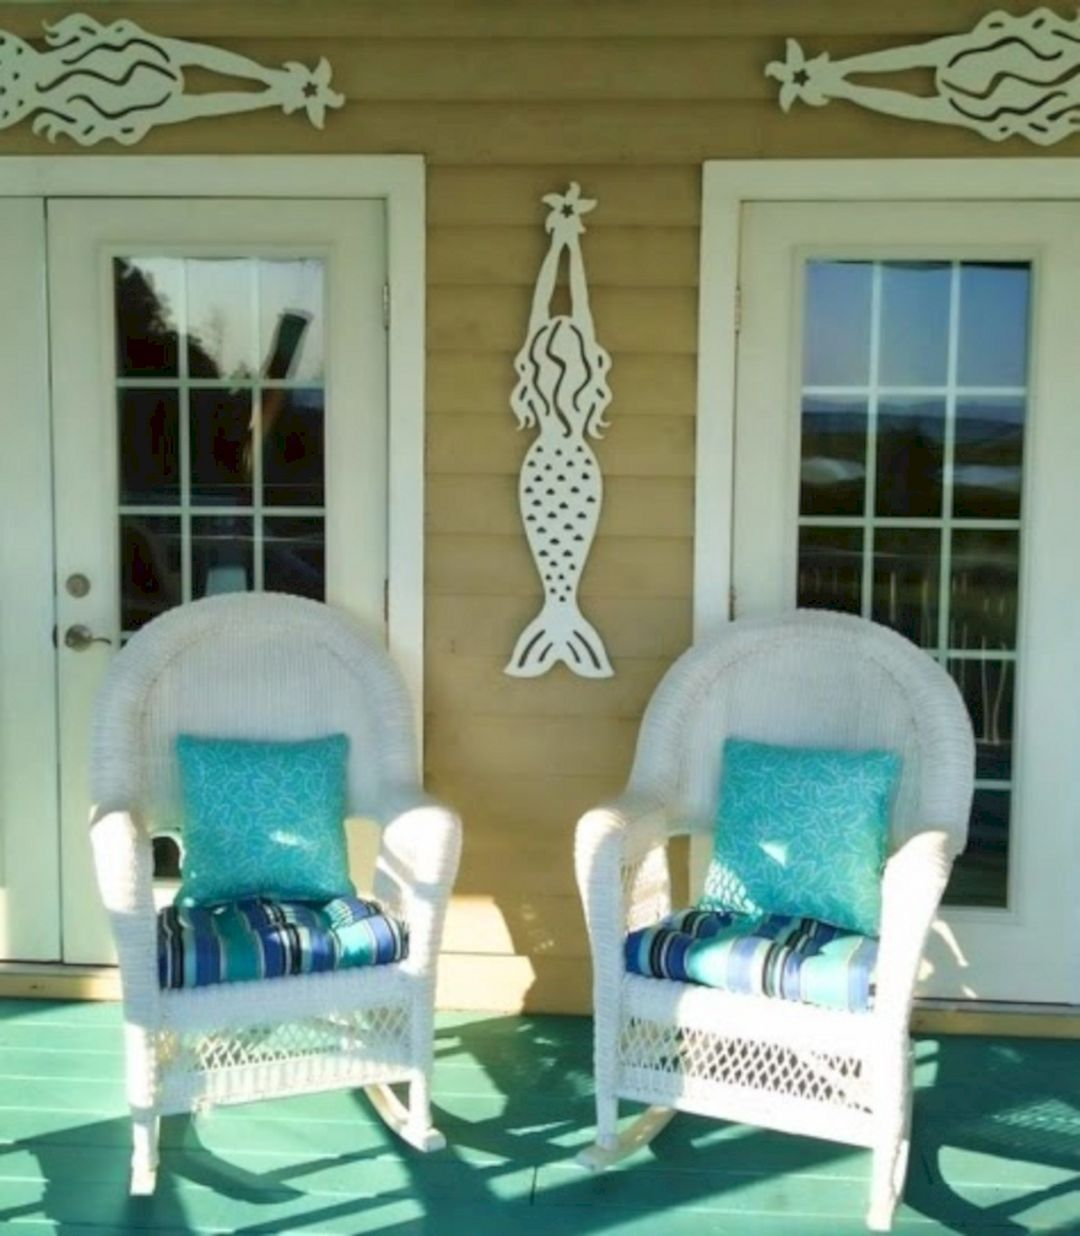 Astounding 20 Marvelous Mermaid Home Decor Inspiration